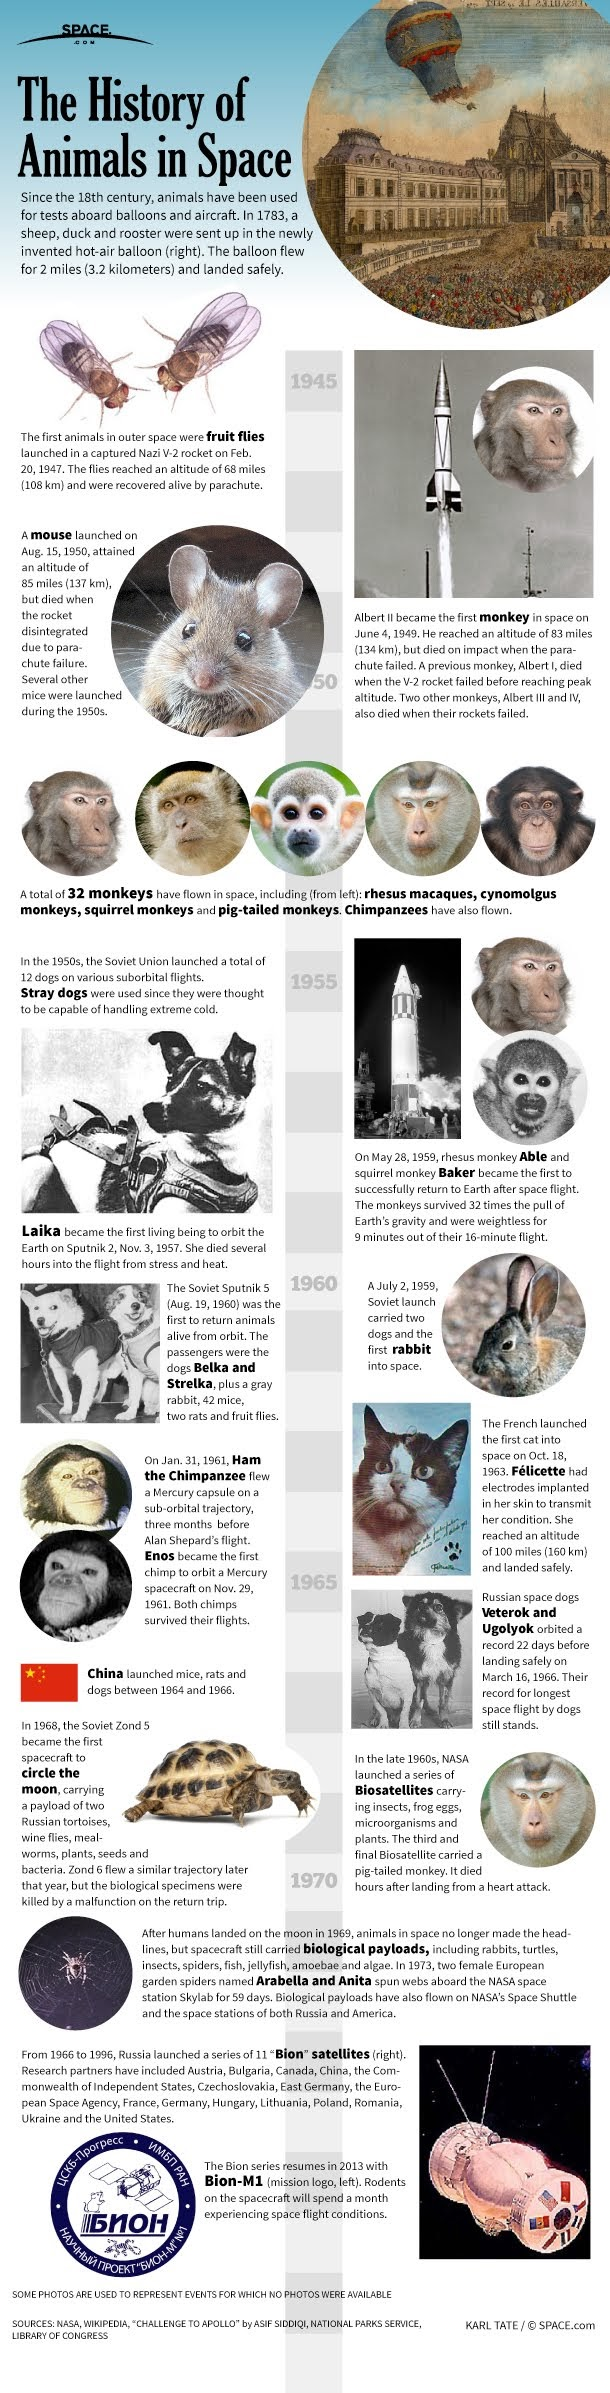 A History of Animals in Space #Infographic